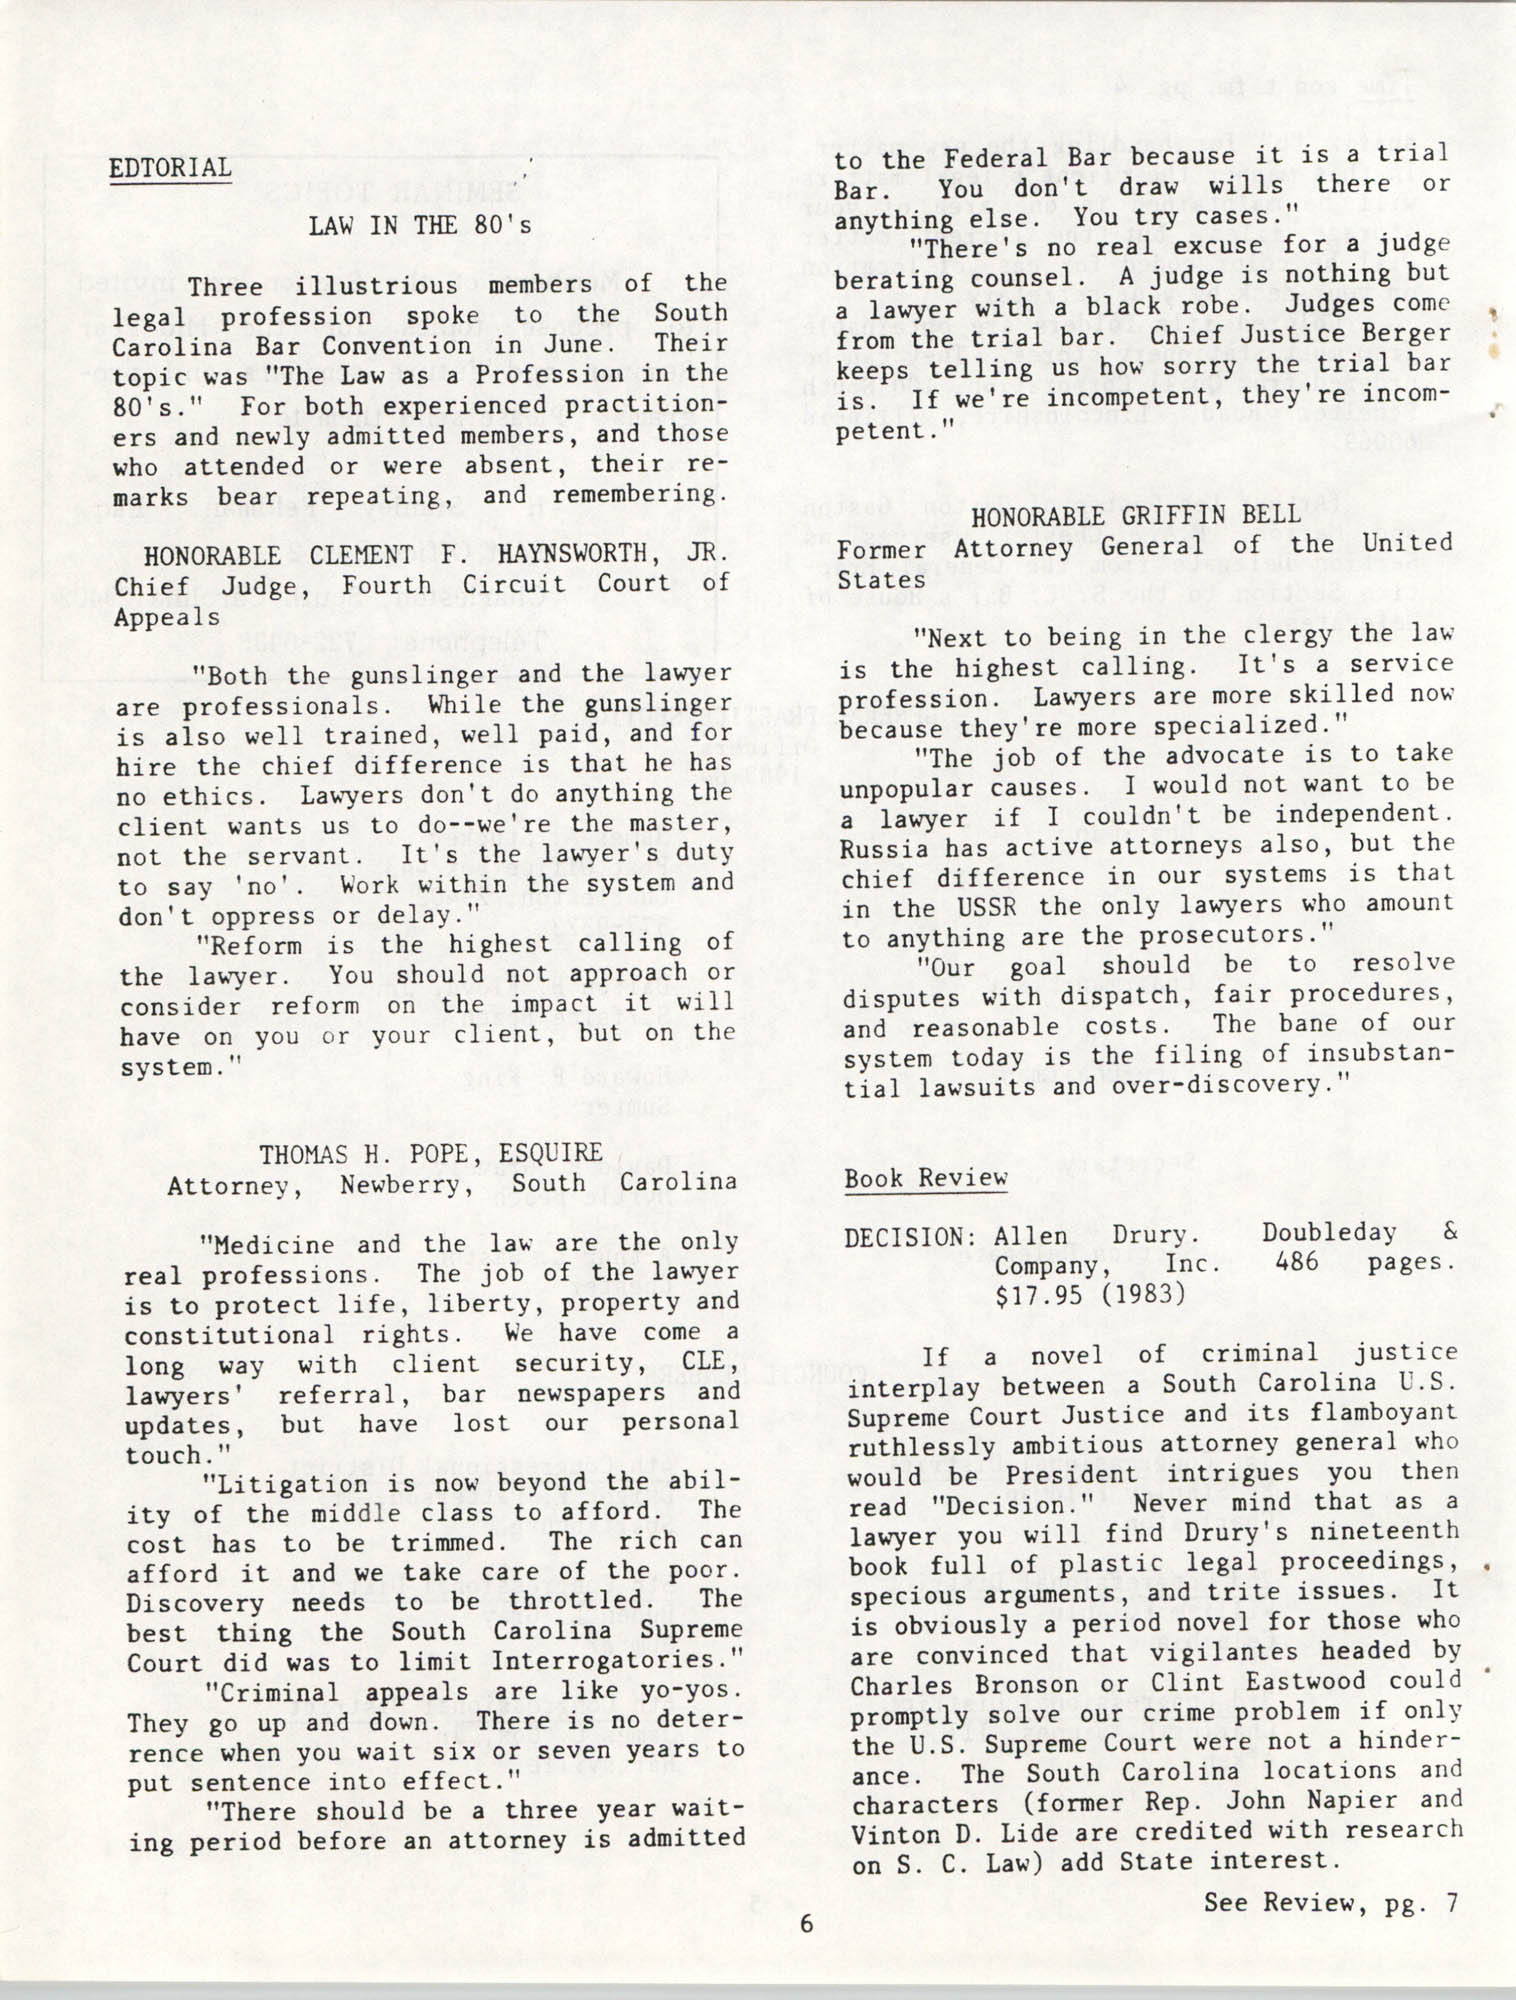 The General Practice Section Update, Vol. 1 No. 1, South Carolina Bar, November 1983, Page 6